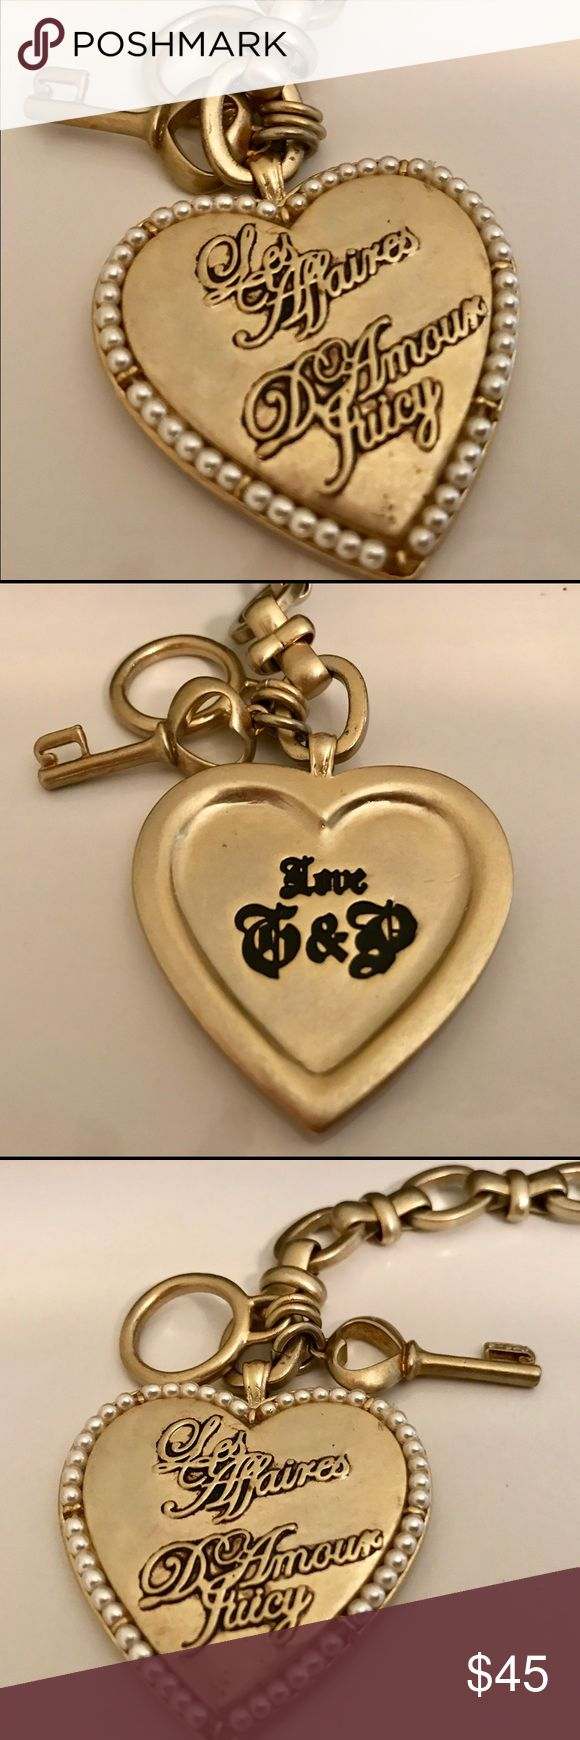 """Juicy Couture - Les Affaires D'Amour Bracelet 7"""" This is a fabulous toggle bracelet in brushed gold tone with oversized heart charm and pearl detail. Bracelet is 7"""". Heart and Pearl Charm is 1.5"""" x 1.5"""". EUC Juicy Couture Jewelry Bracelets"""